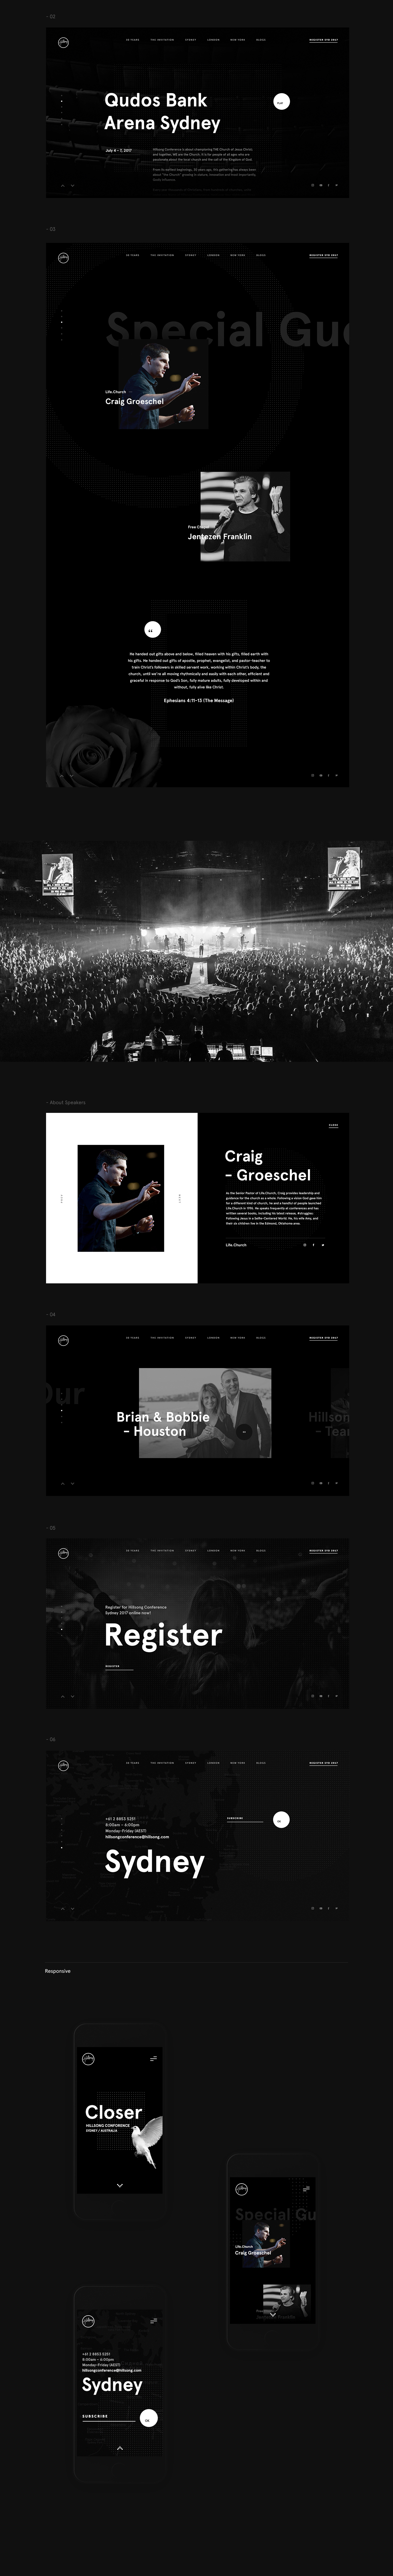 typography  ,motion,Web,conference,Event,mobile,splash,interaction